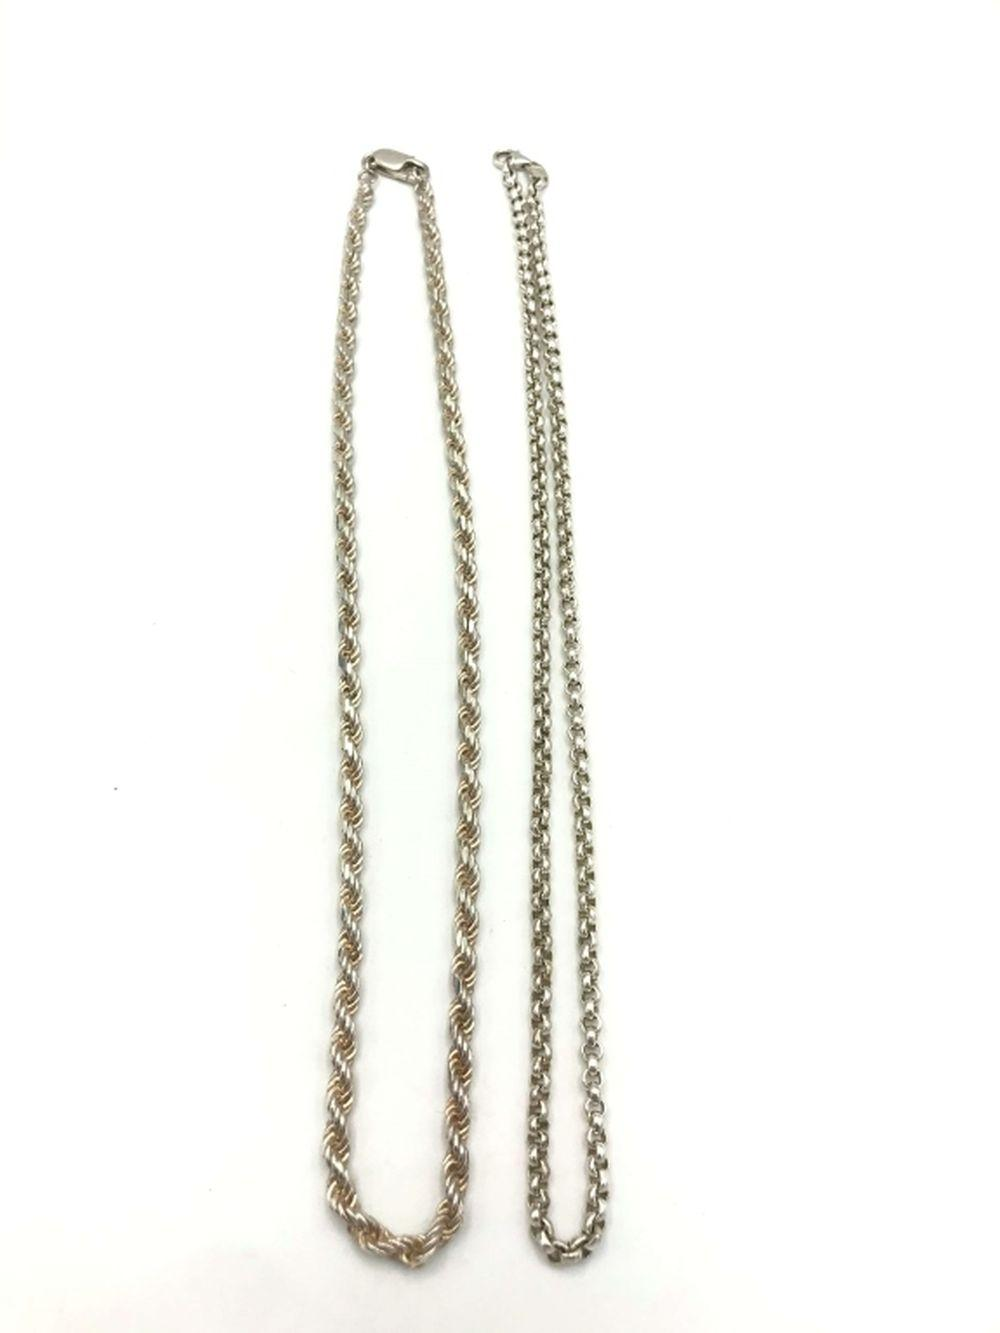 2 HEAVY STERLING NECKLACES